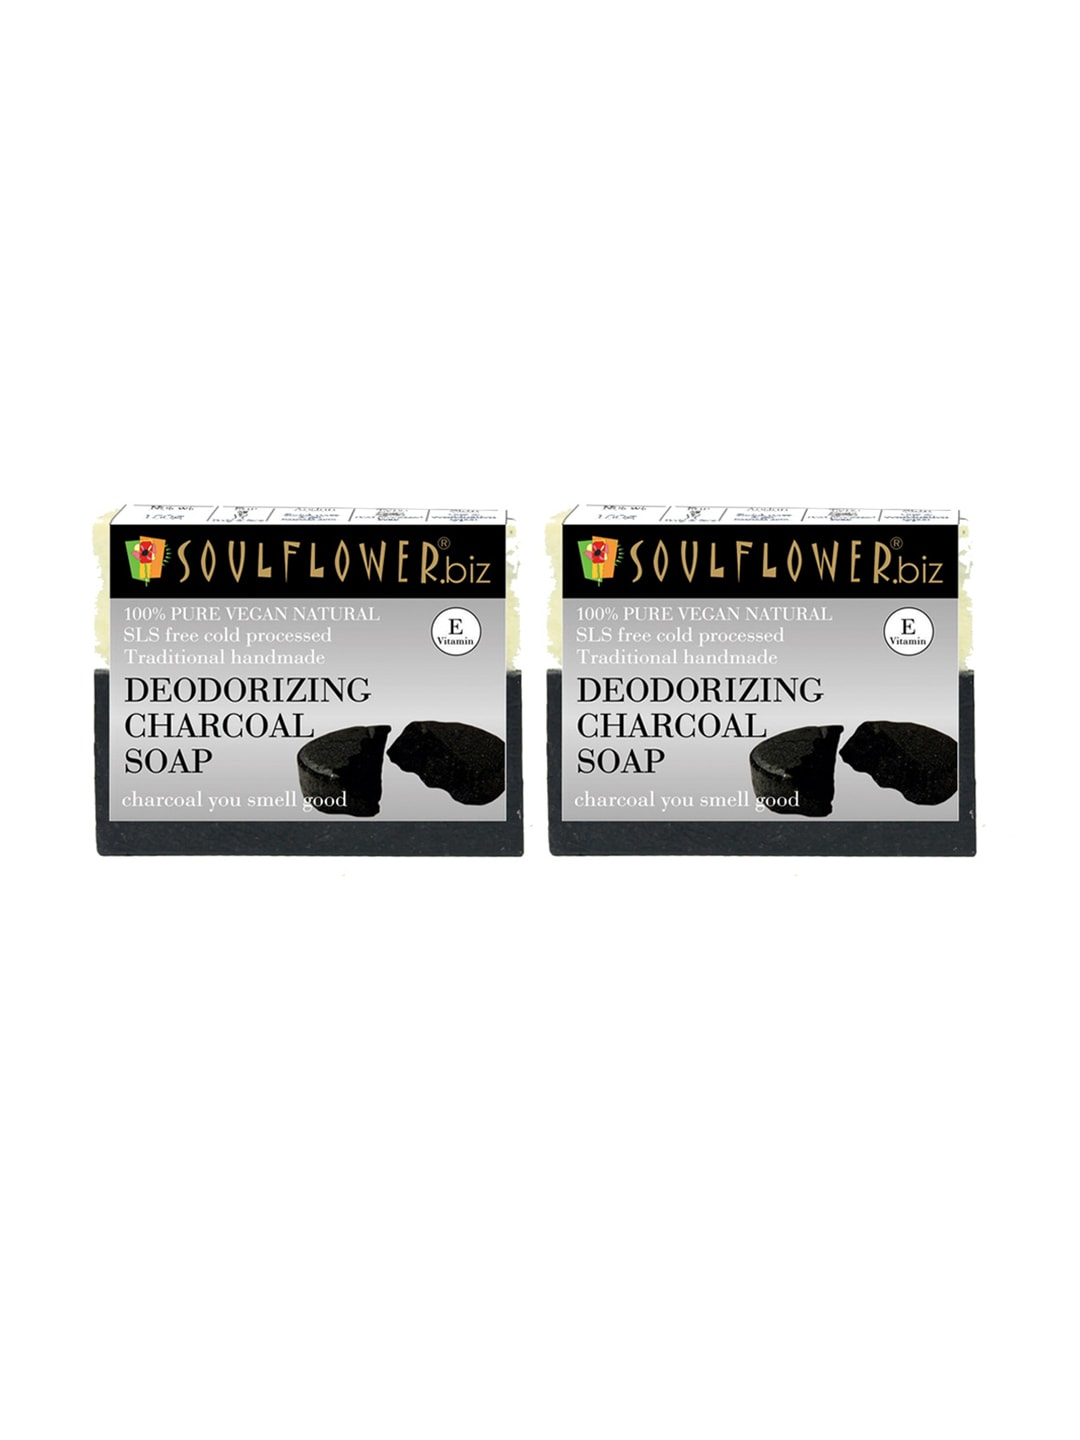 Soulflower Unisex Pack of 2 Deodorizing Charcoal Soaps image